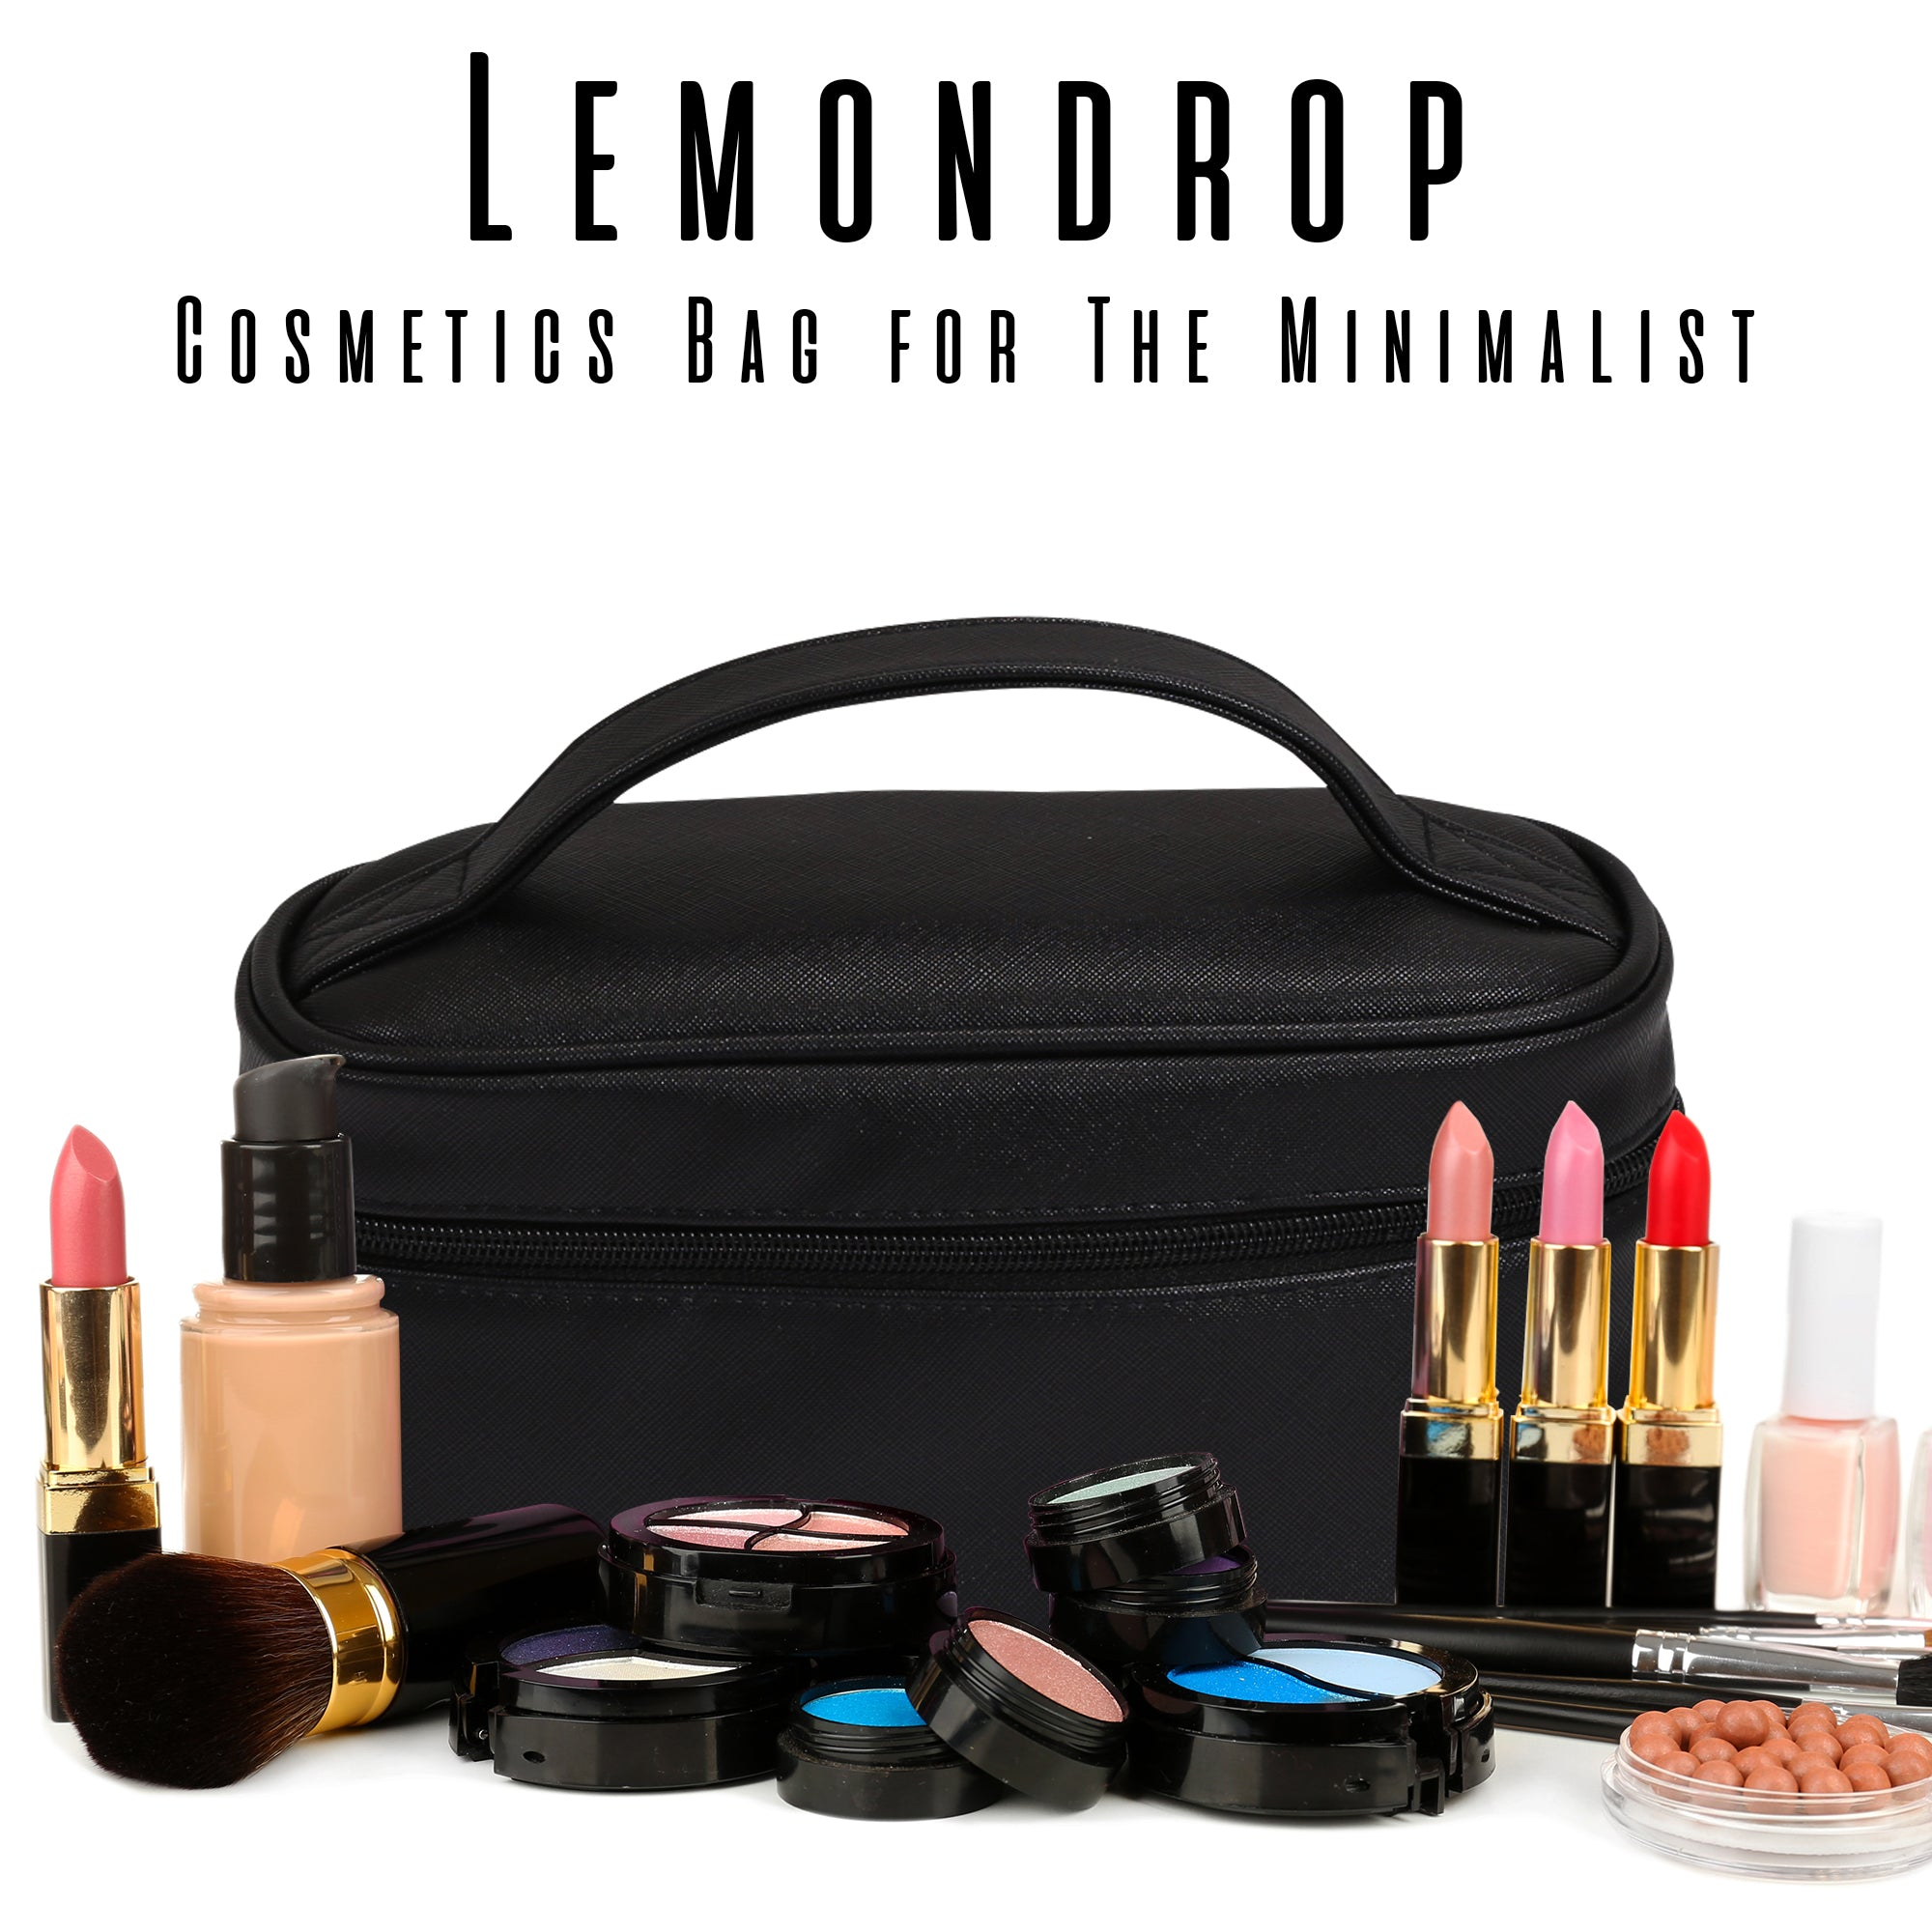 Cosmetics Bag Lemondrop Design - primewareinc